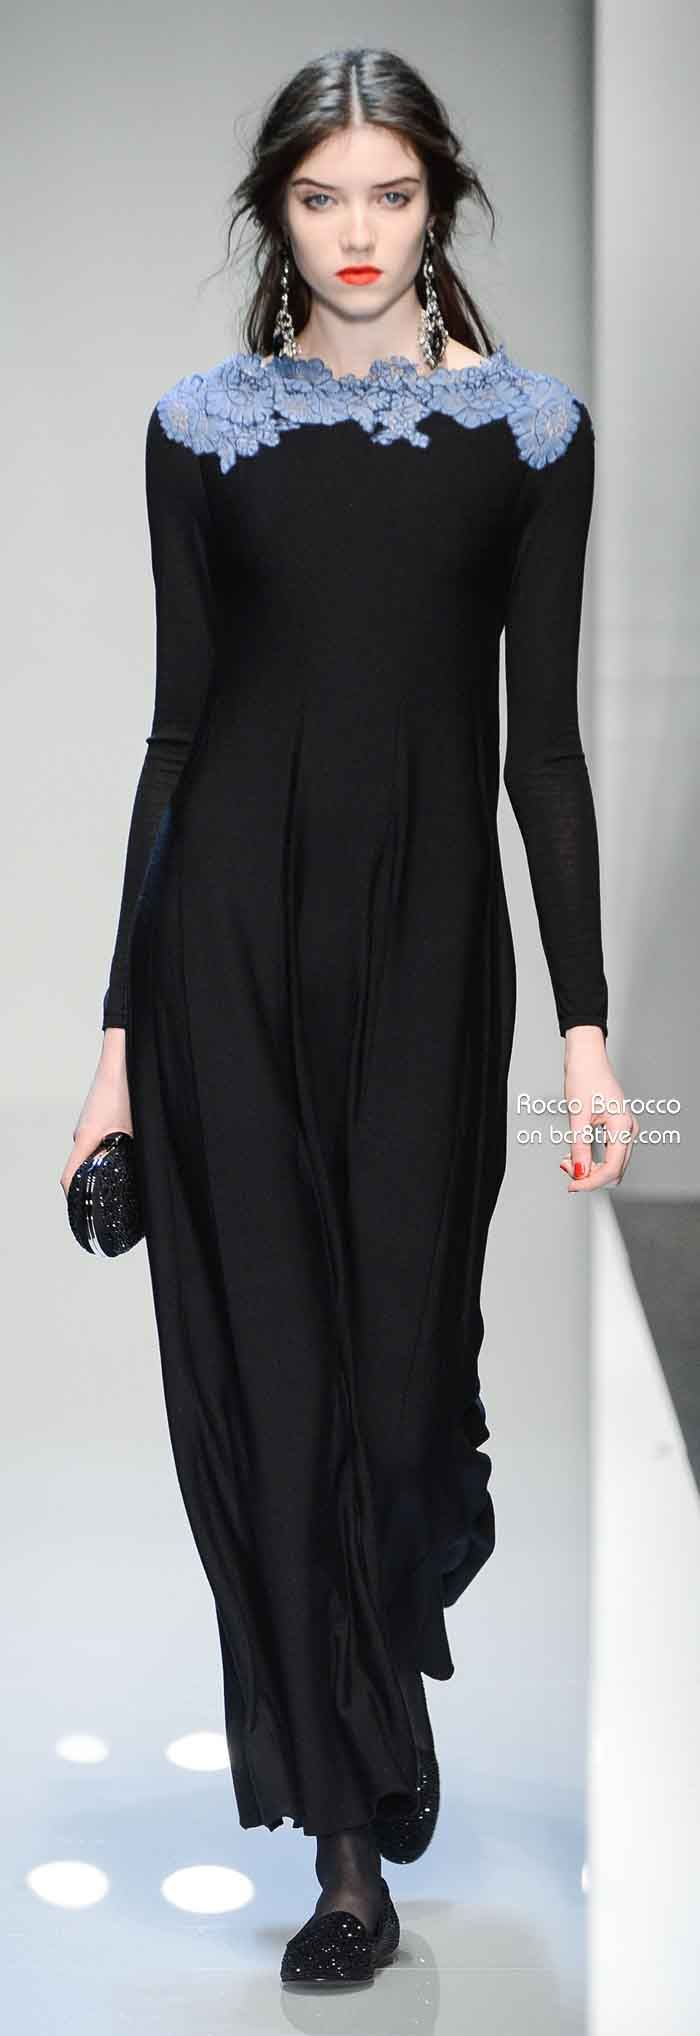 Roccobarocco Fall Winter 2013-14